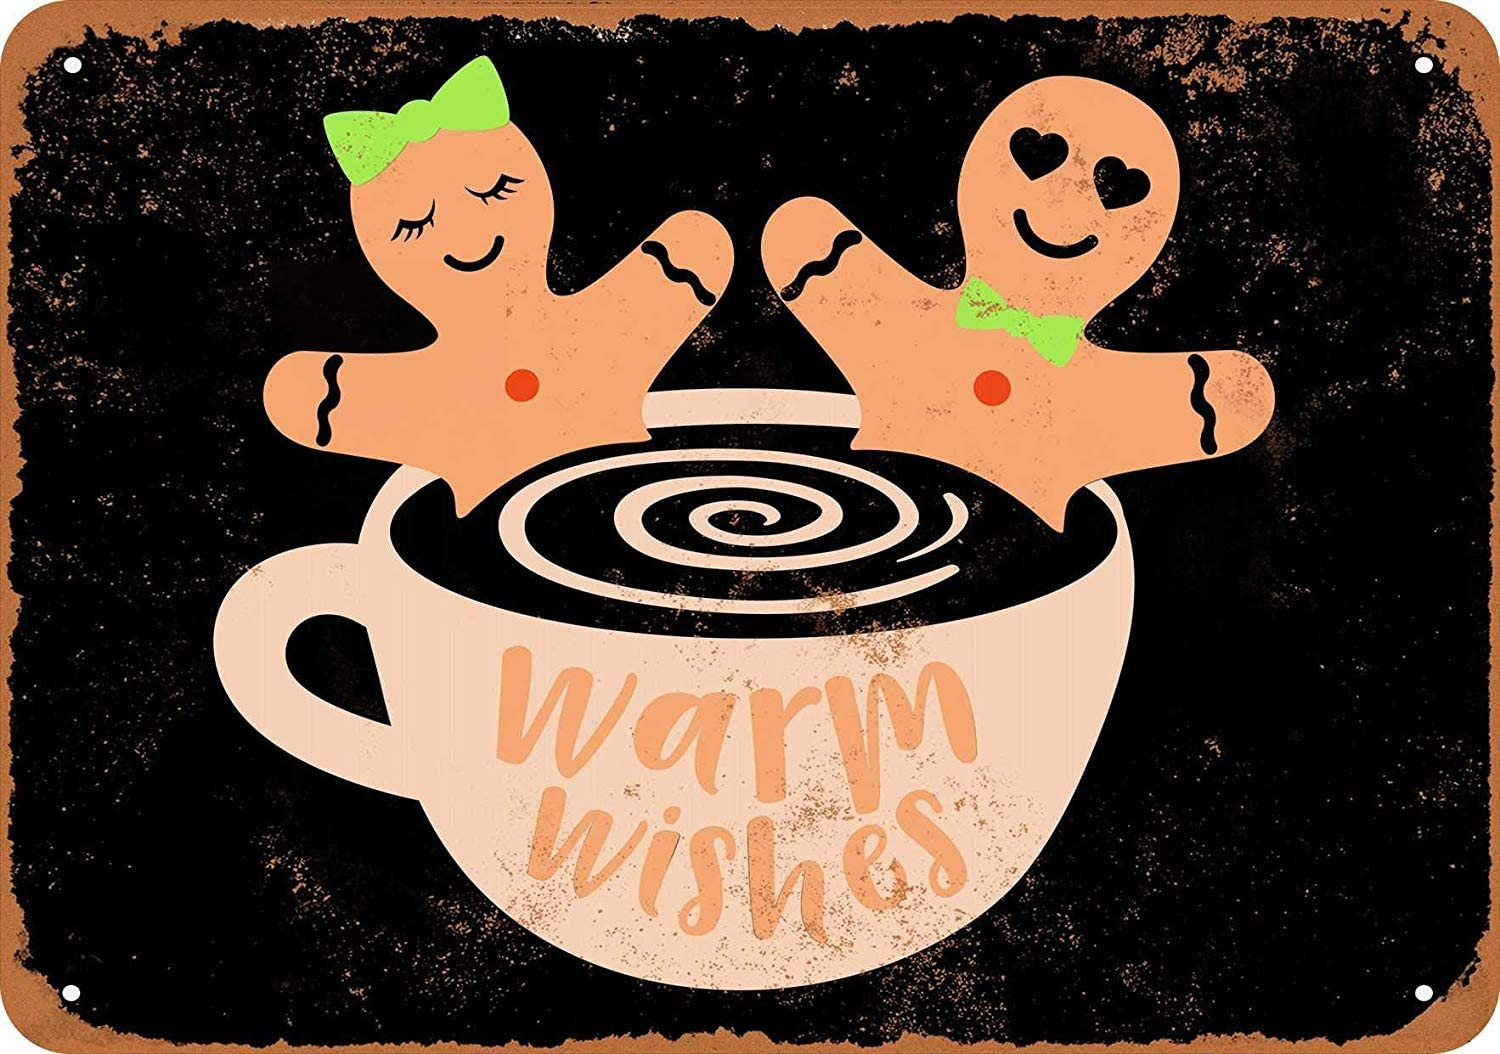 QDTrade Tin Signs Metal Vintage Look 12 x 16 inch - Warm Wishes Gingerbreads in Hot Tub